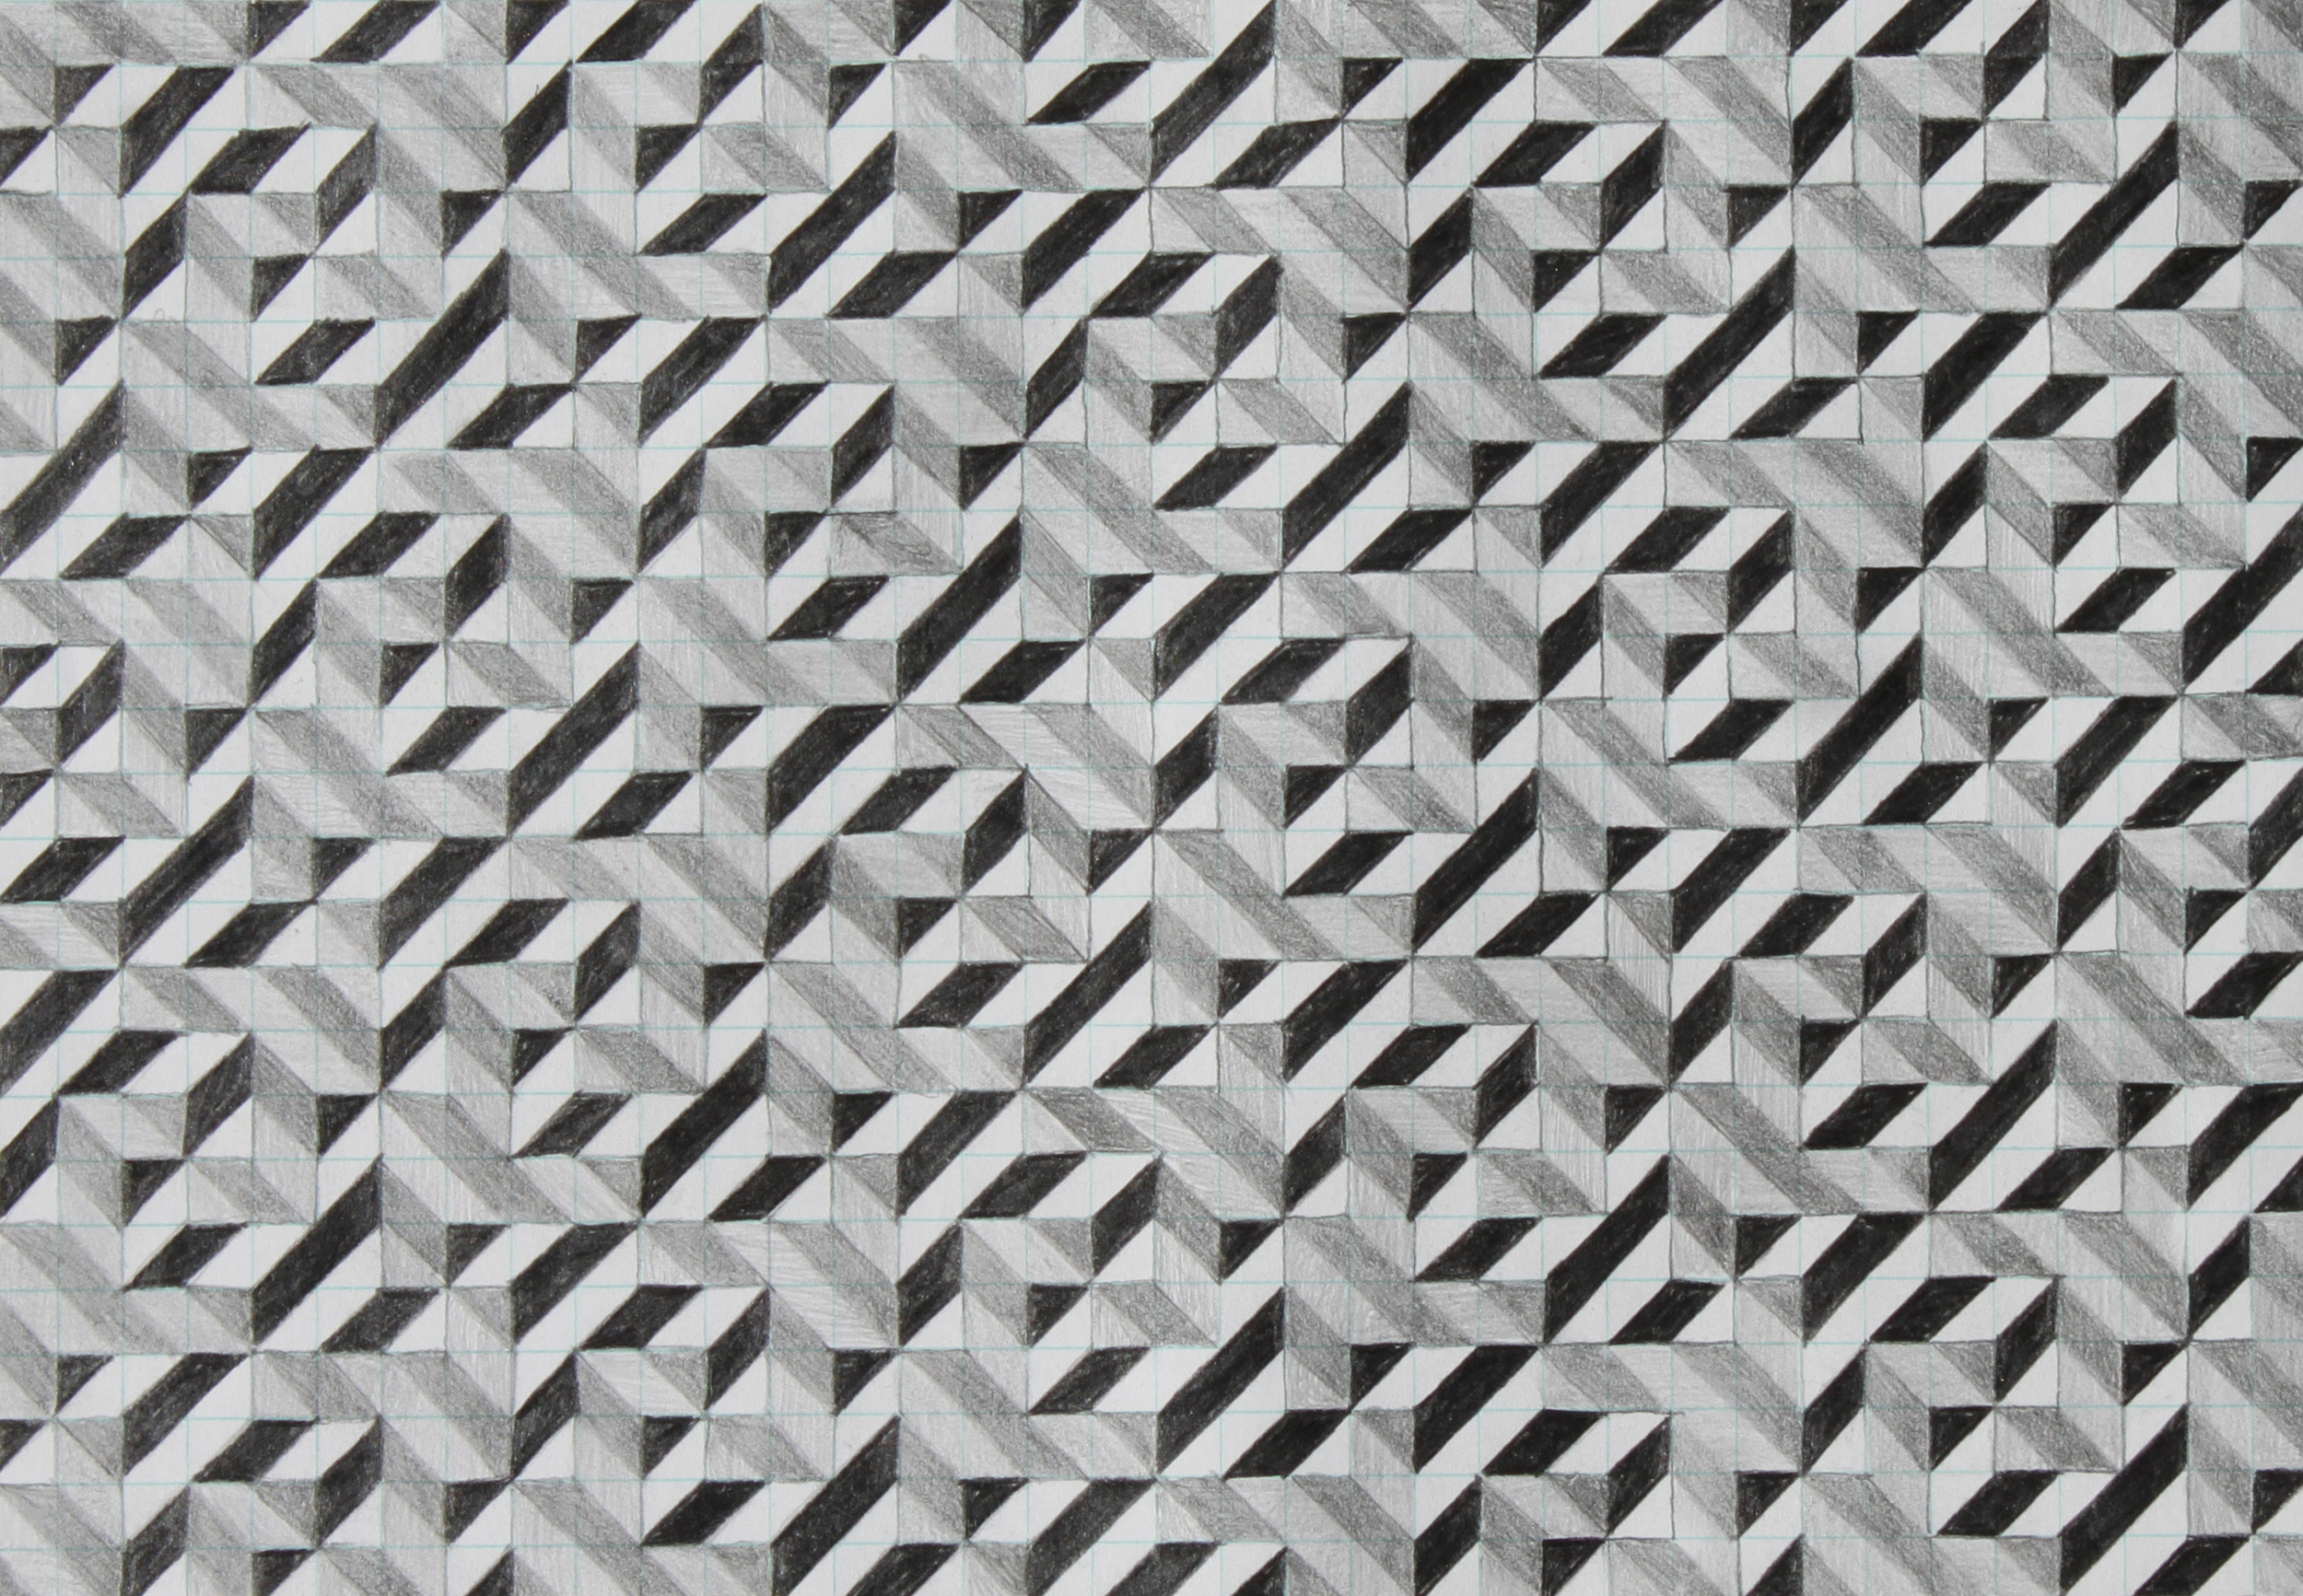 five, 2007, graphite on paper, 6.25 x 9 inches